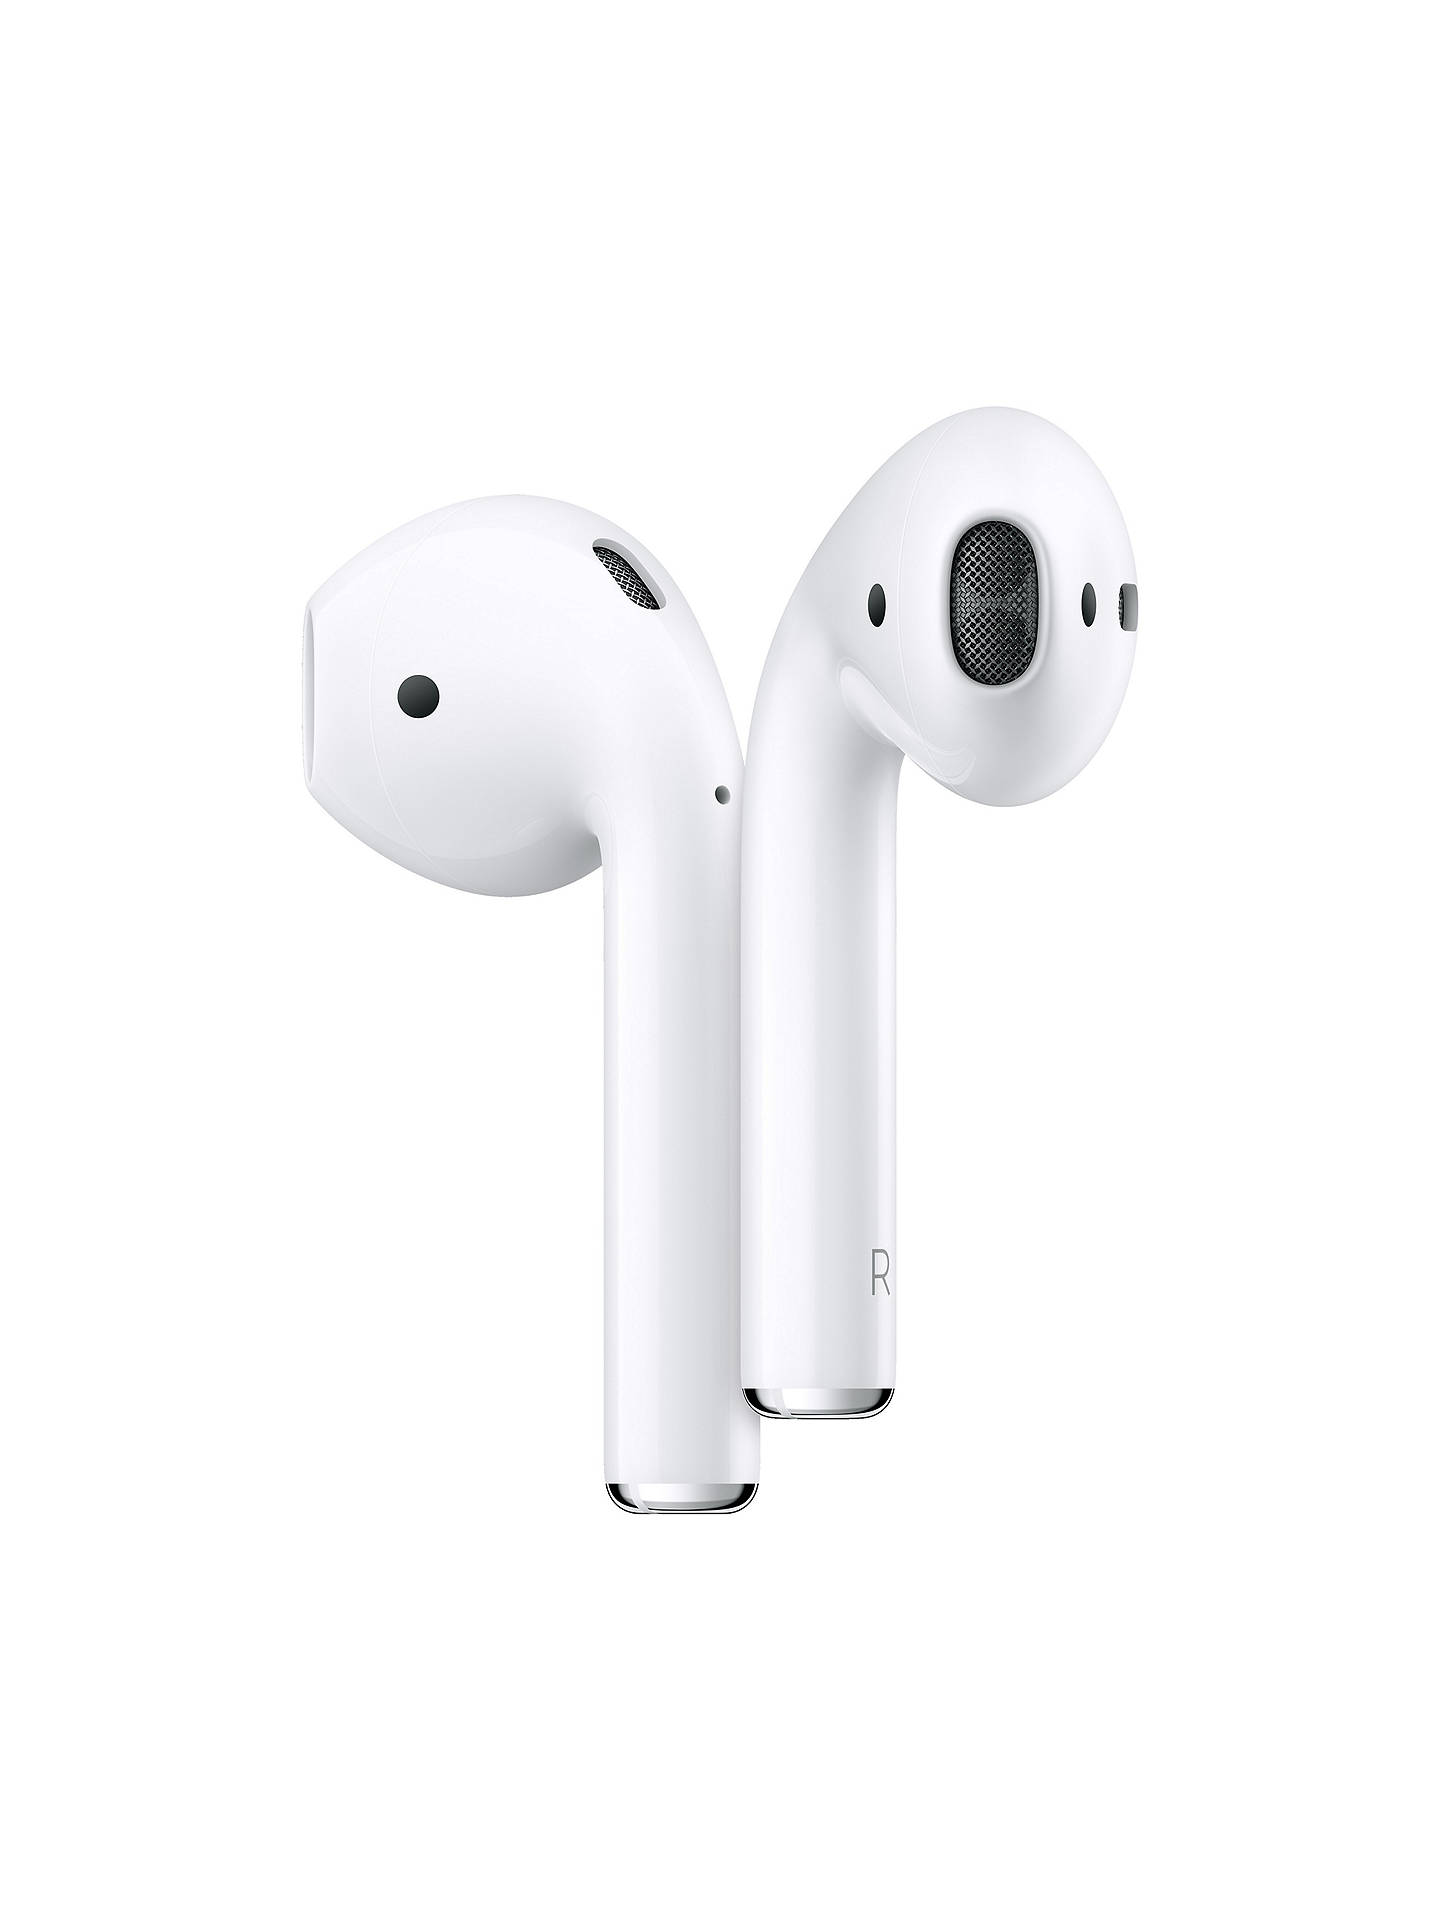 newest 71575 d0bd2 2019 Apple AirPods with Wireless Charging Case